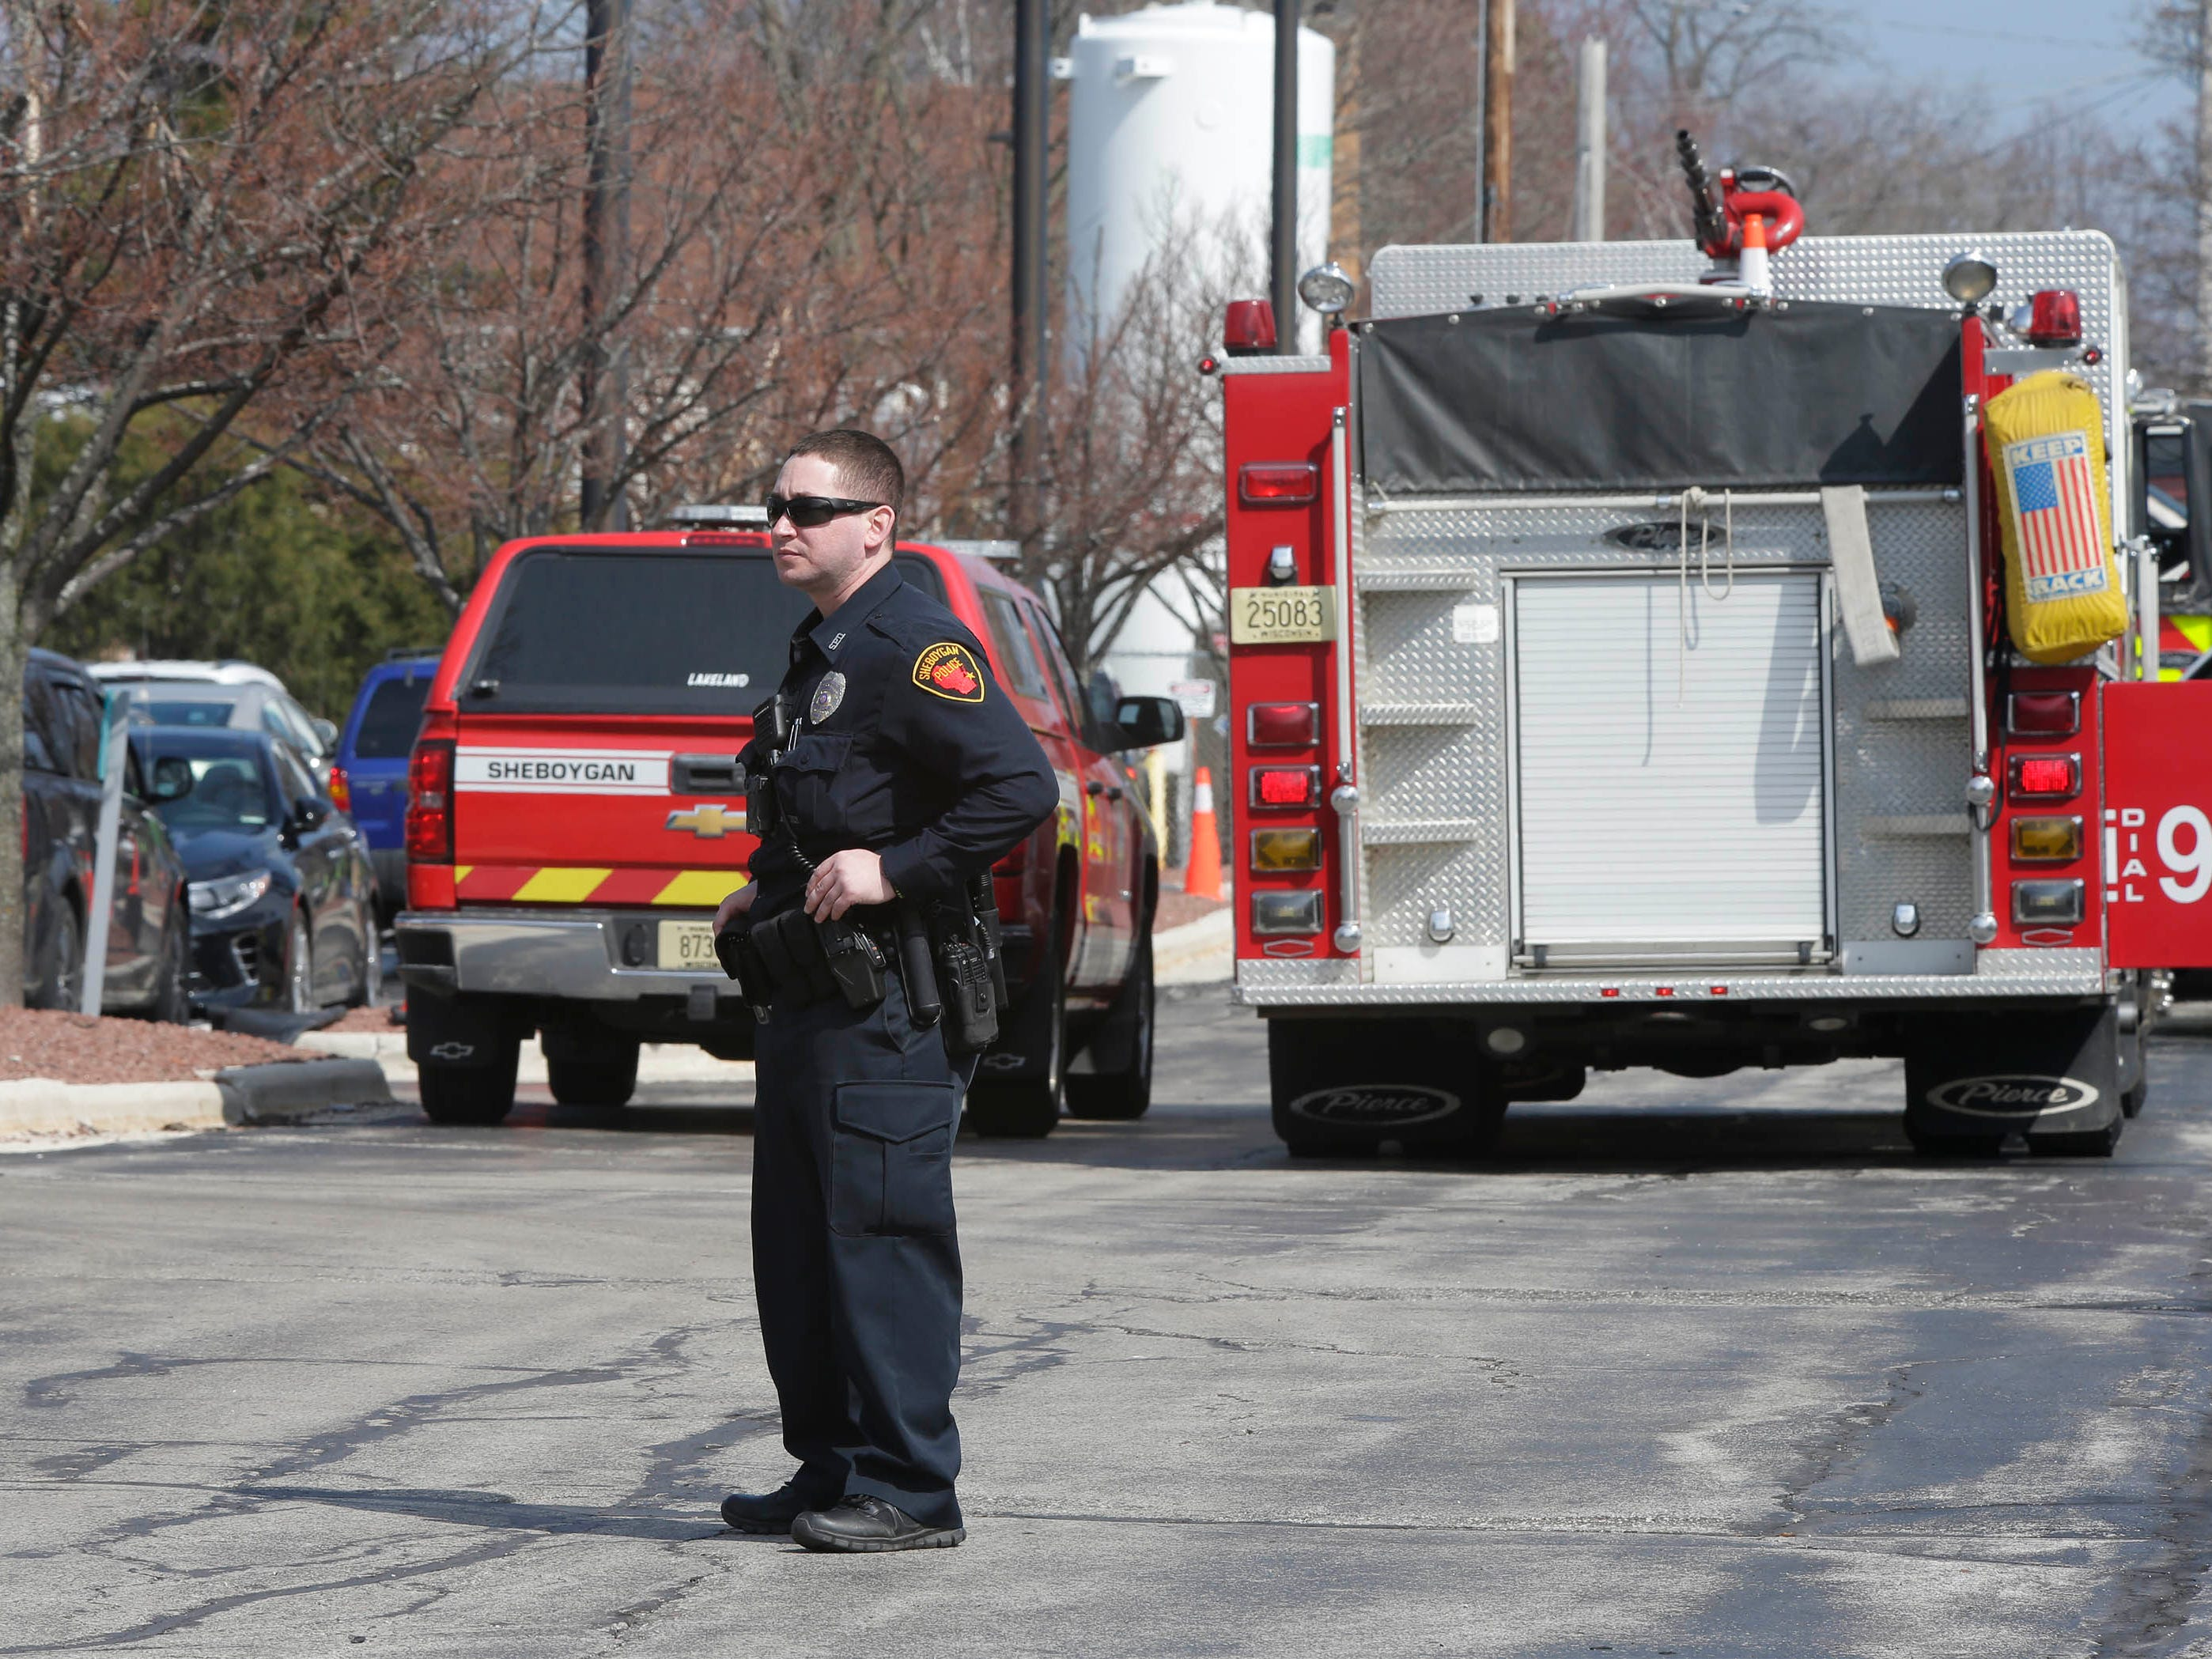 DRILL EXERCISE:  A Sheboygan Police officer stands at the perimeter of a training exercise for Sheboygan area emergency agencies, Tuesday, April 16, 2019, in Sheboygan, Wis.